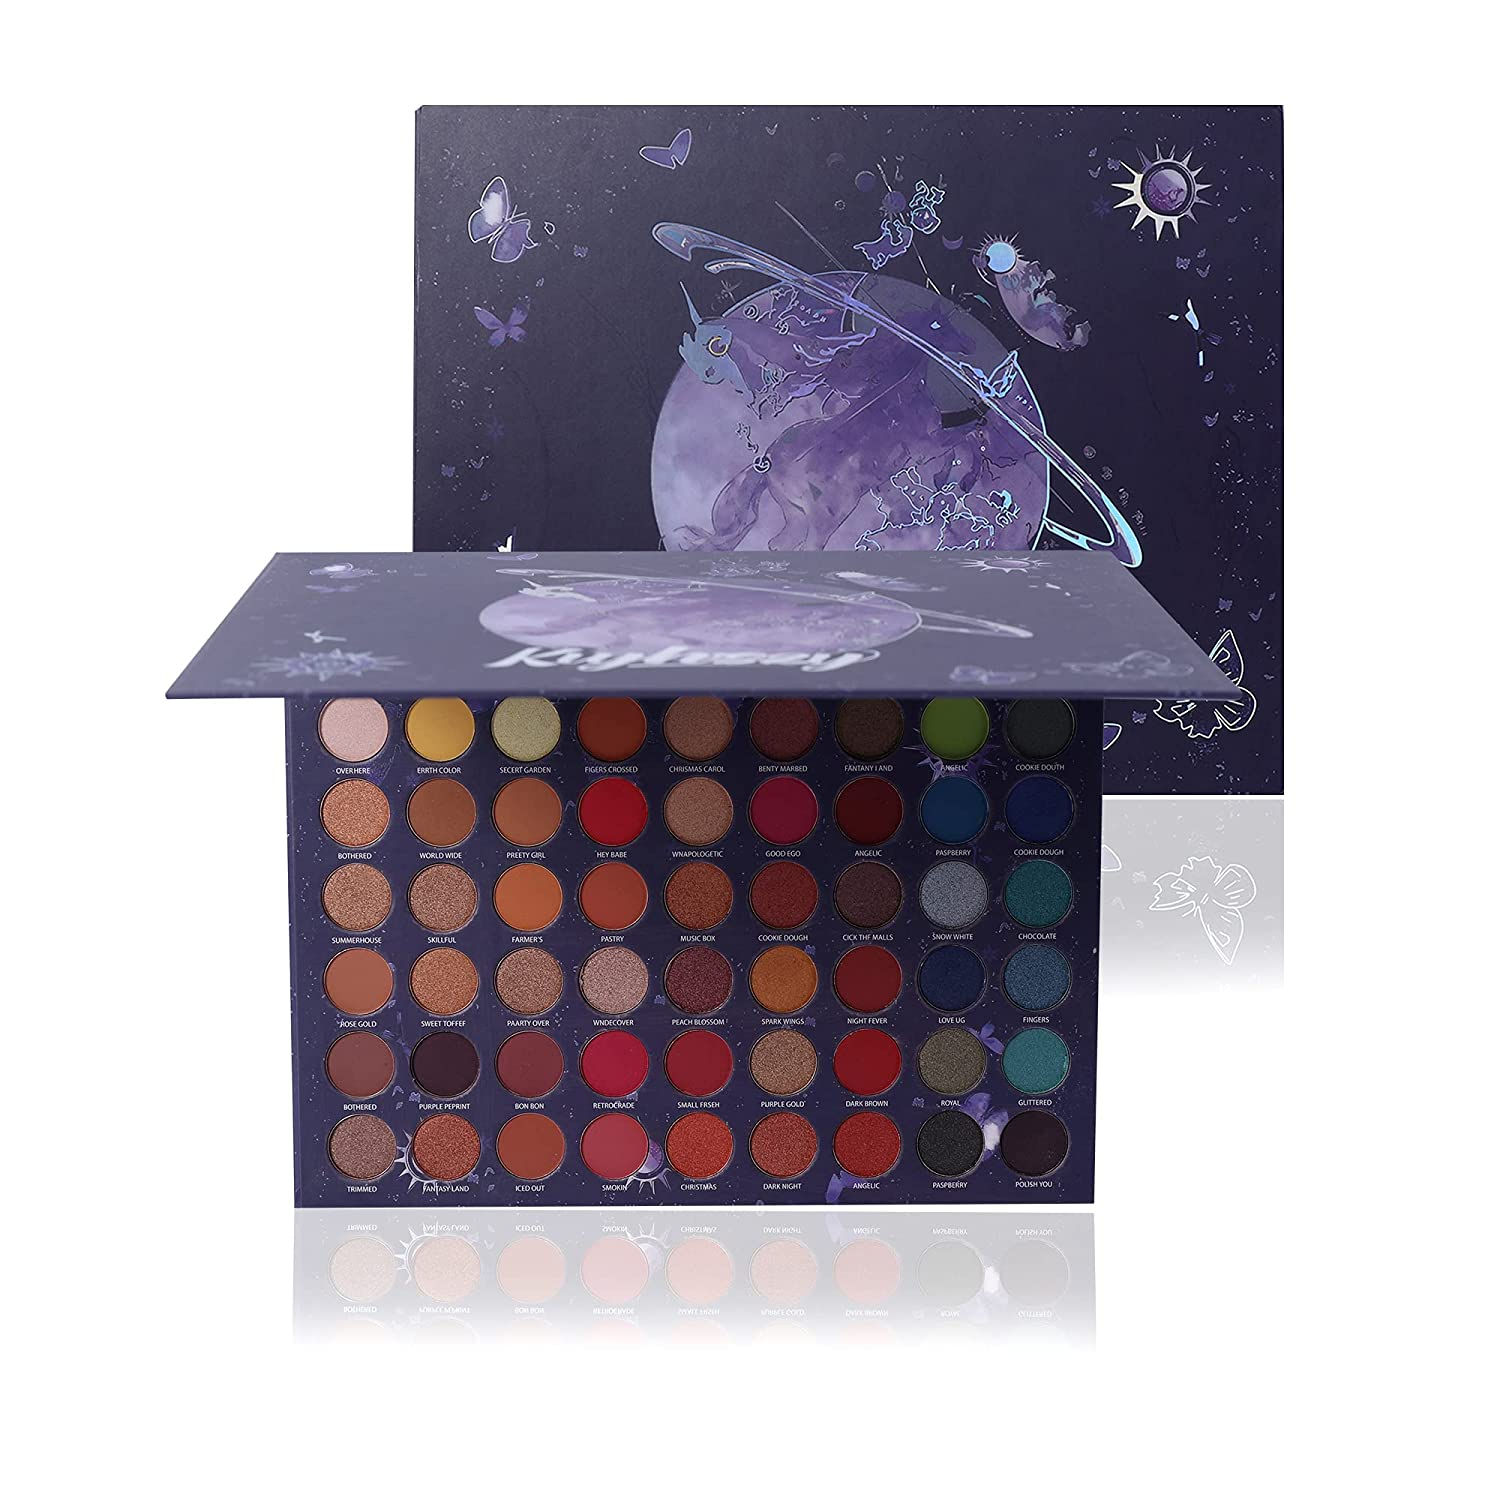 Kvyhszy Eyeshadow Palette Makeup Pallet Easy to Blend Color Fusion 63 Shades Eye Makeup (06)